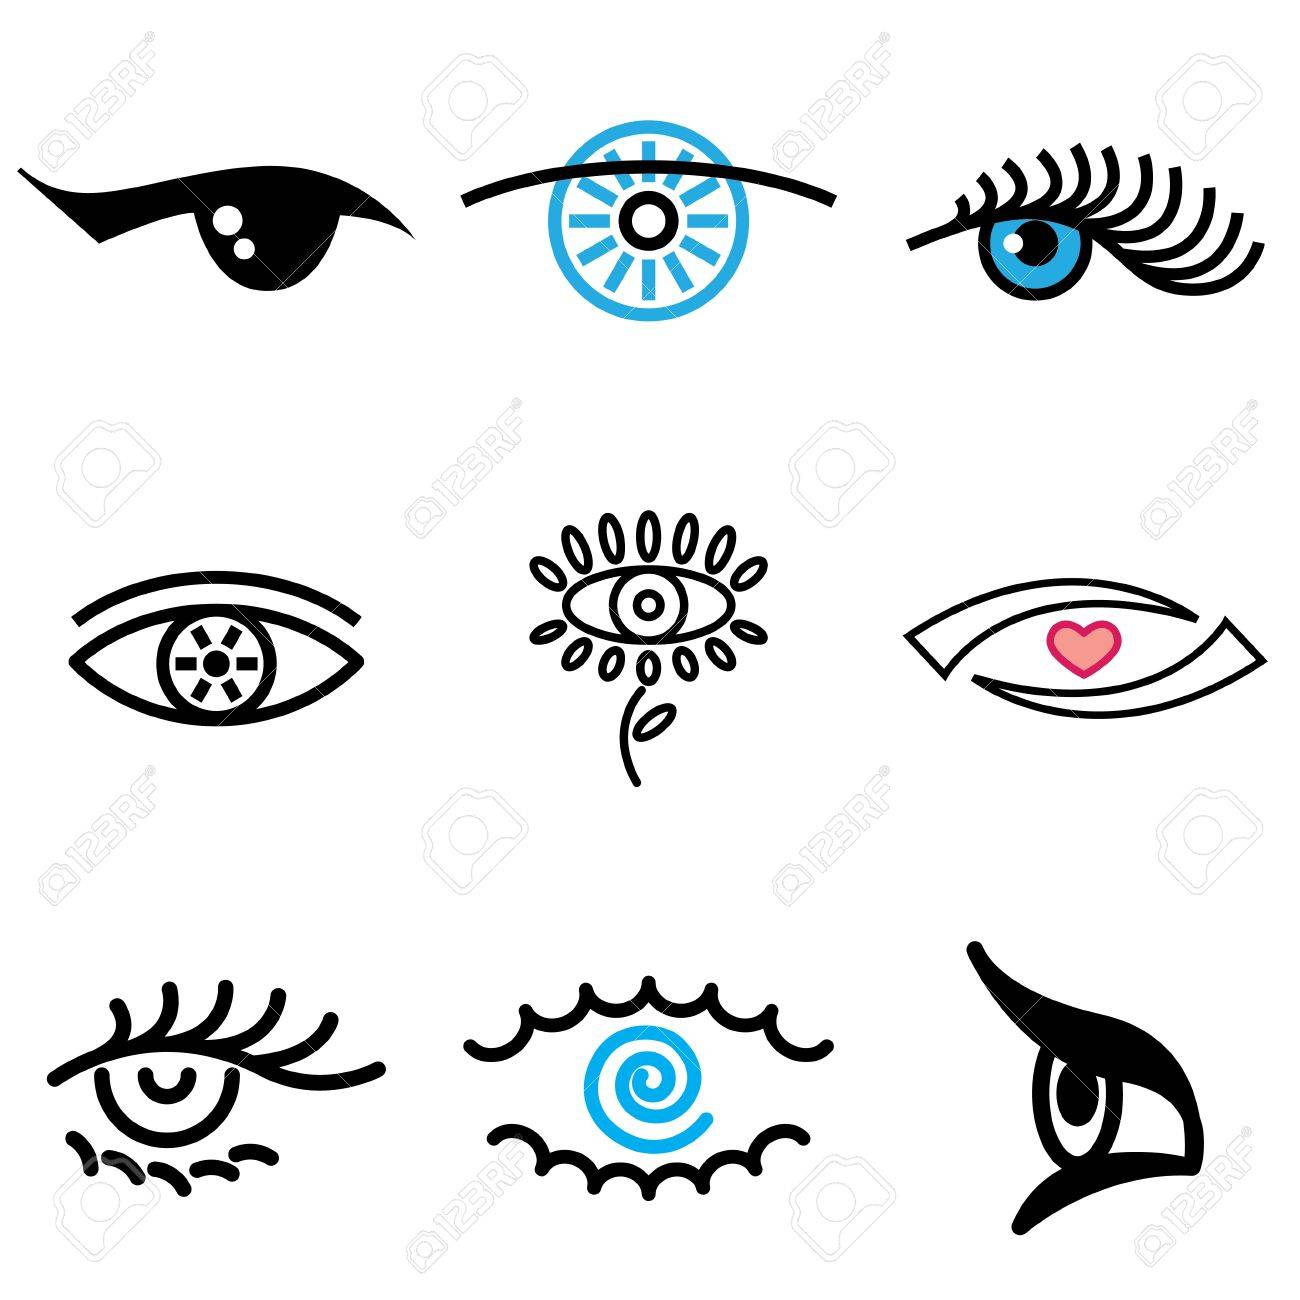 eye hand drawn icons in vector Stock Vector - 16270866